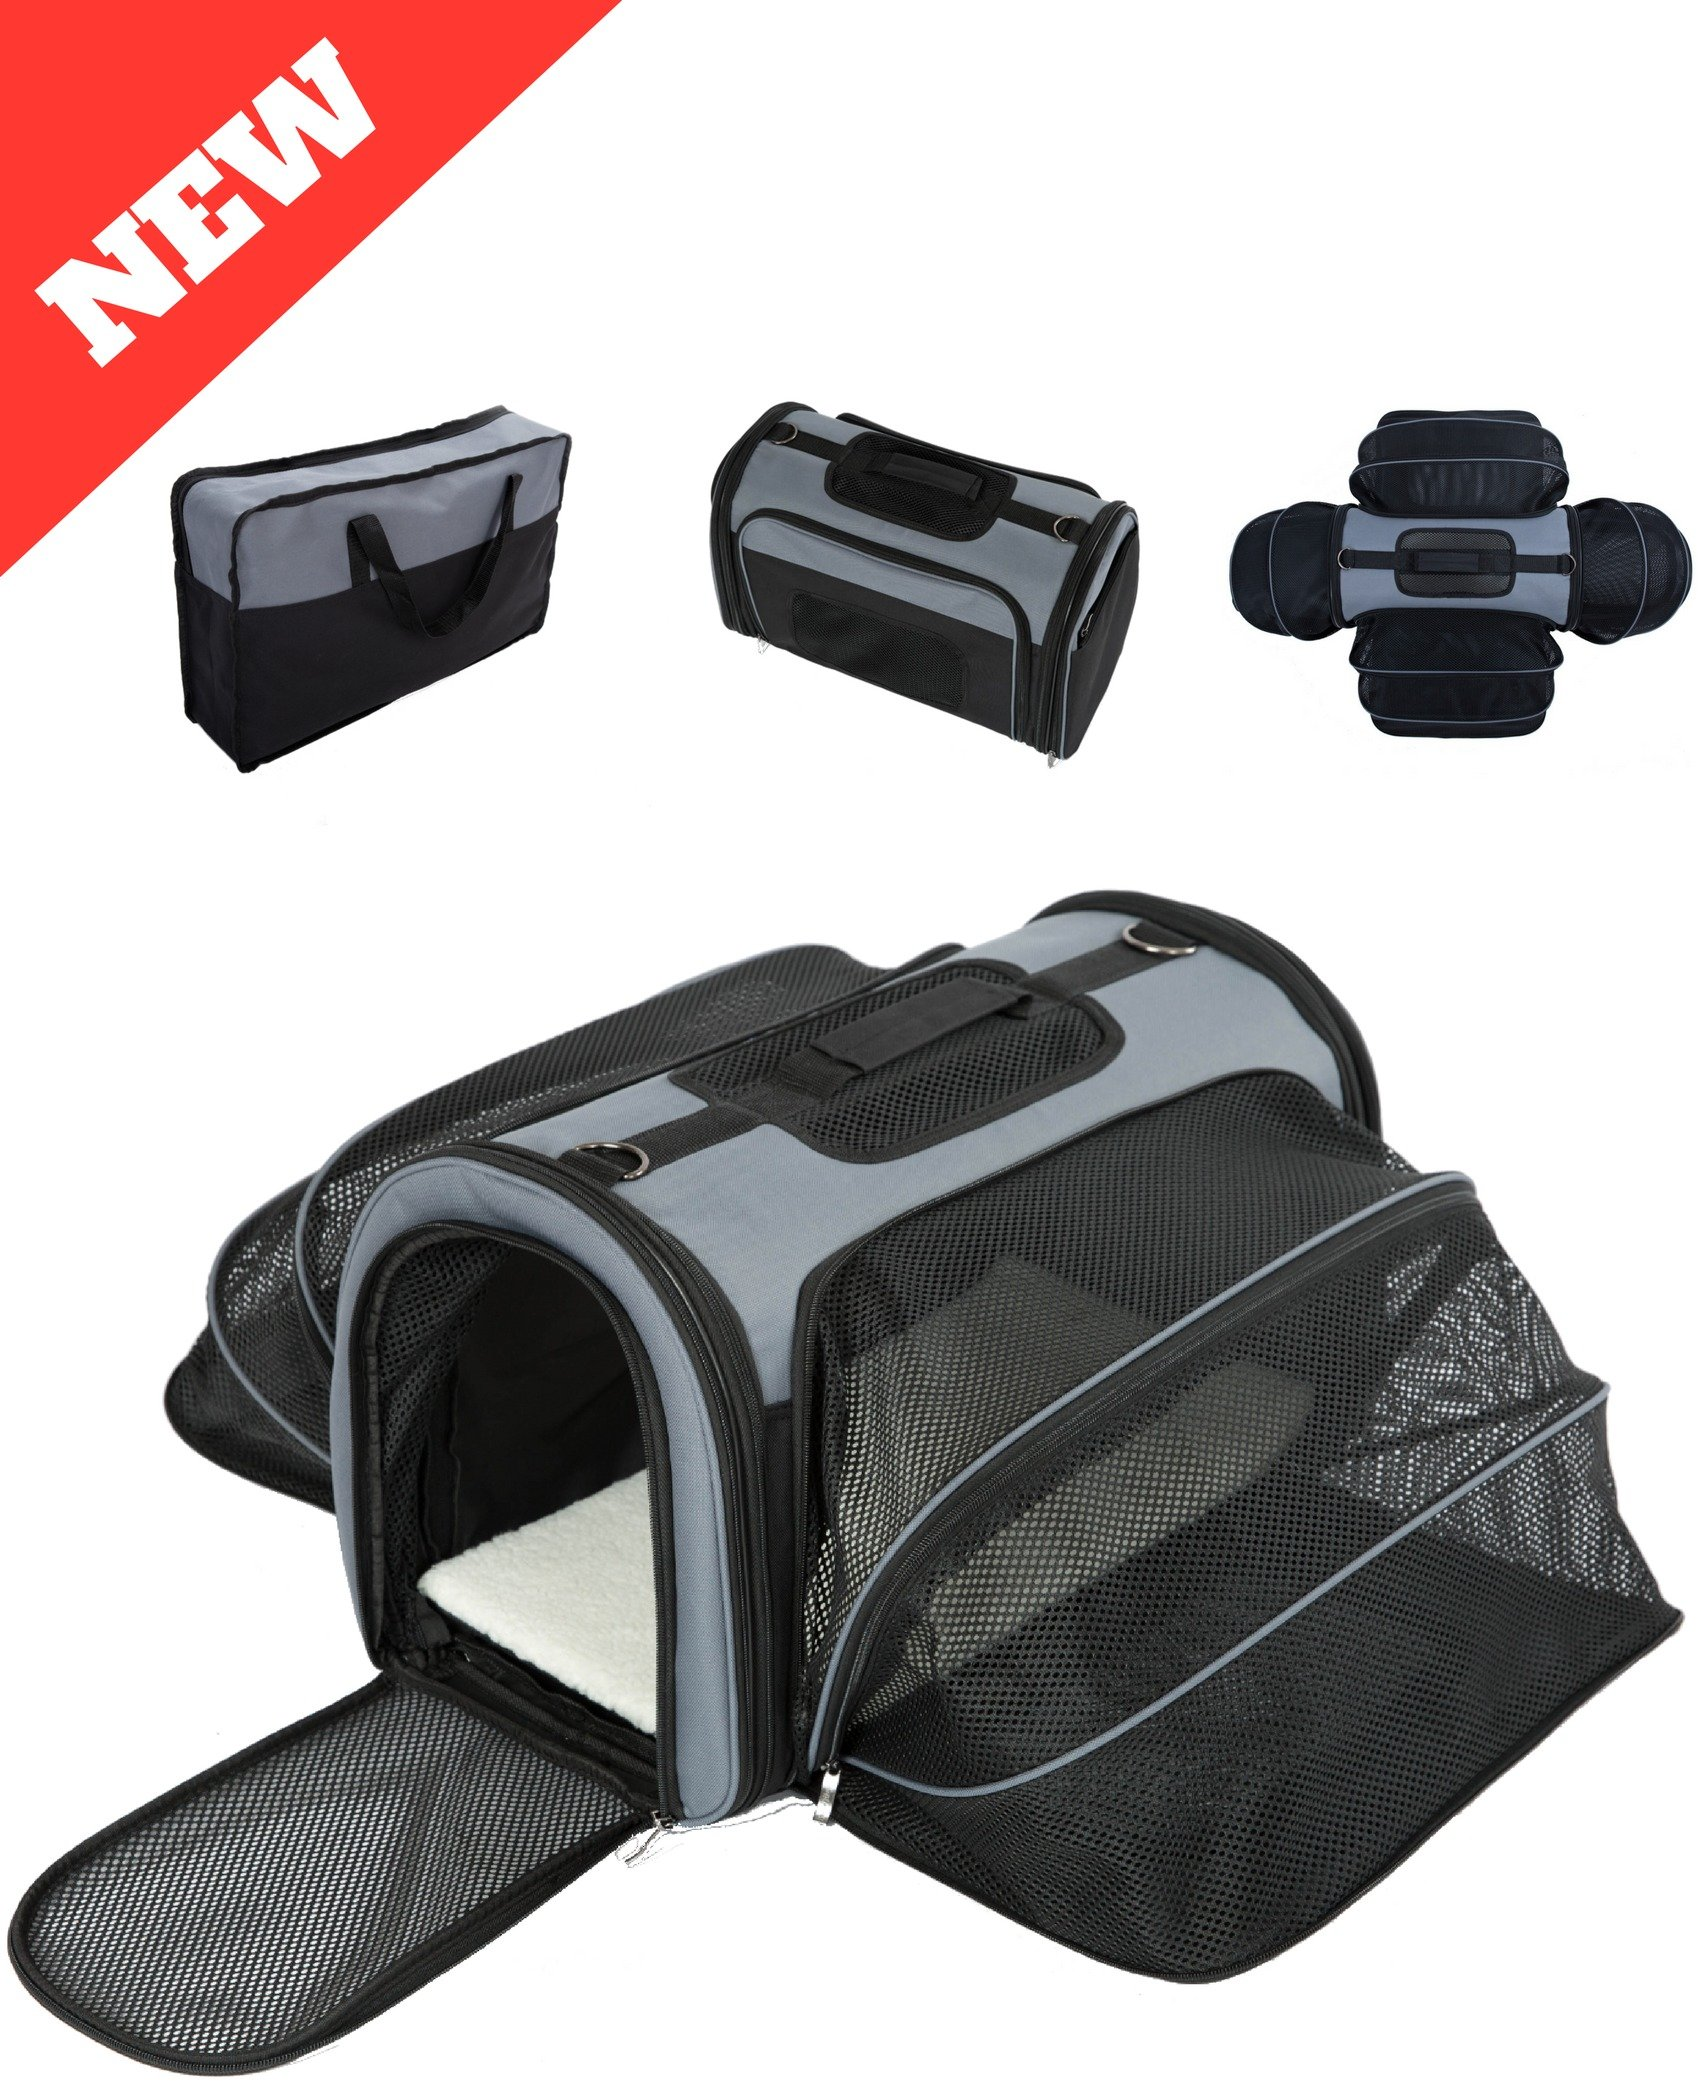 4 Way Expandable Soft Sided Airline Approved Pet Carrier for Cats and Dogs   Folding for Easy Transport   For Air or Car Travel, Meets Most Under Seat Requirements   Large Size by Smiling Paws Pets